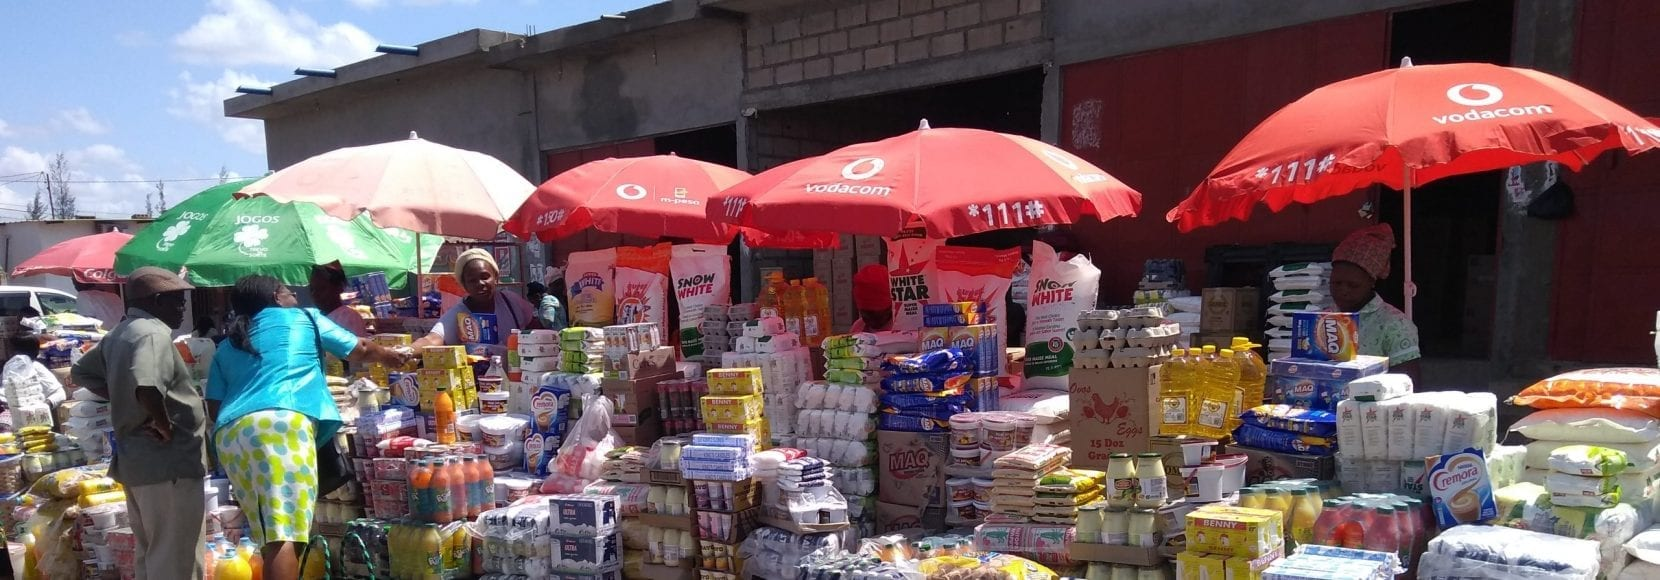 A market in Mozambique